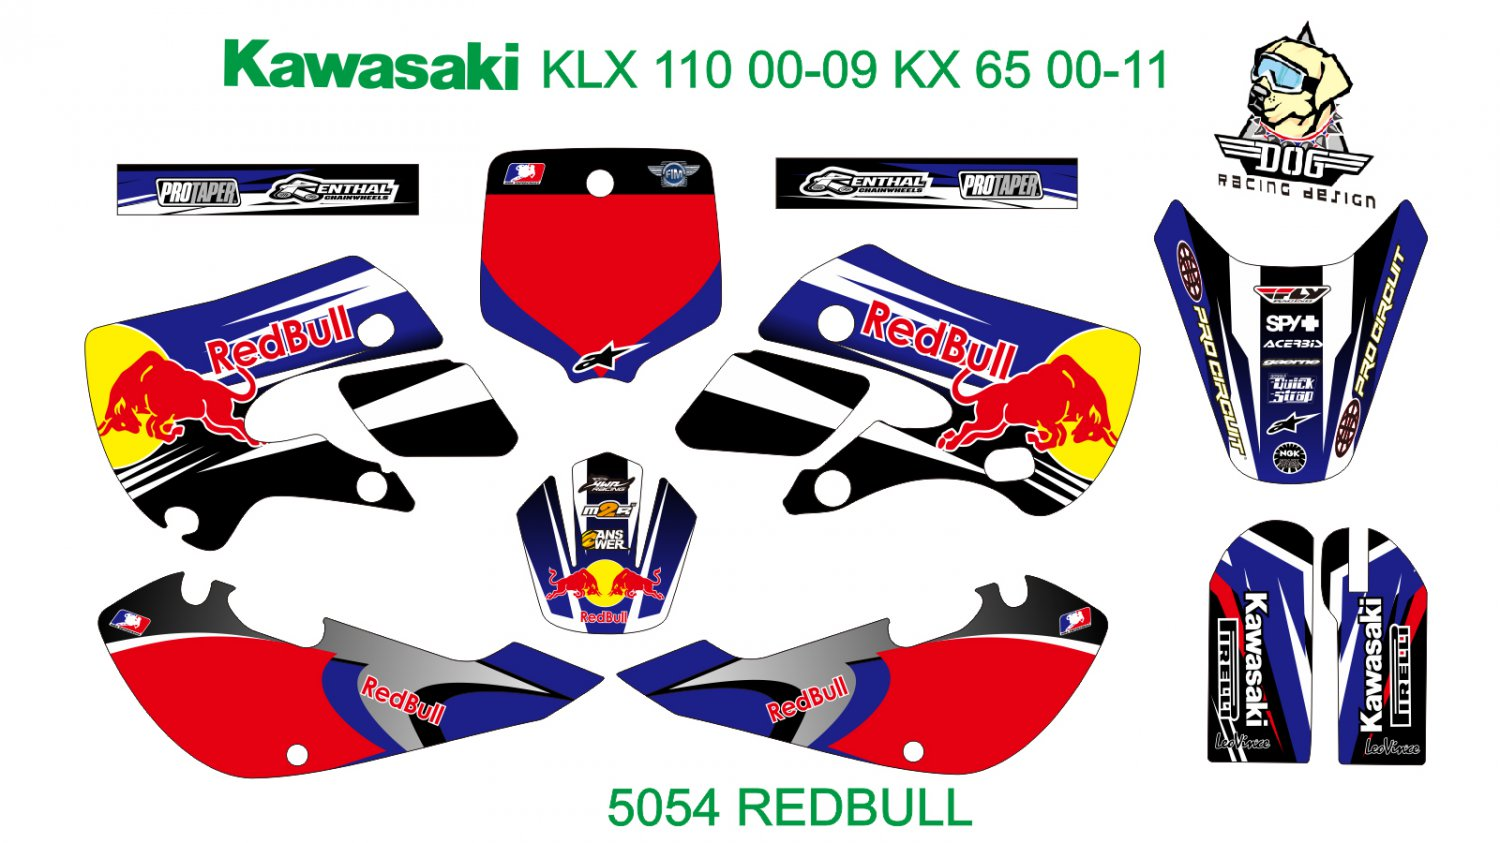 KAWASAKI KLX 110 2000-2009 KX 65 2000-2011 GRAPHIC DECAL KIT CODE.5054